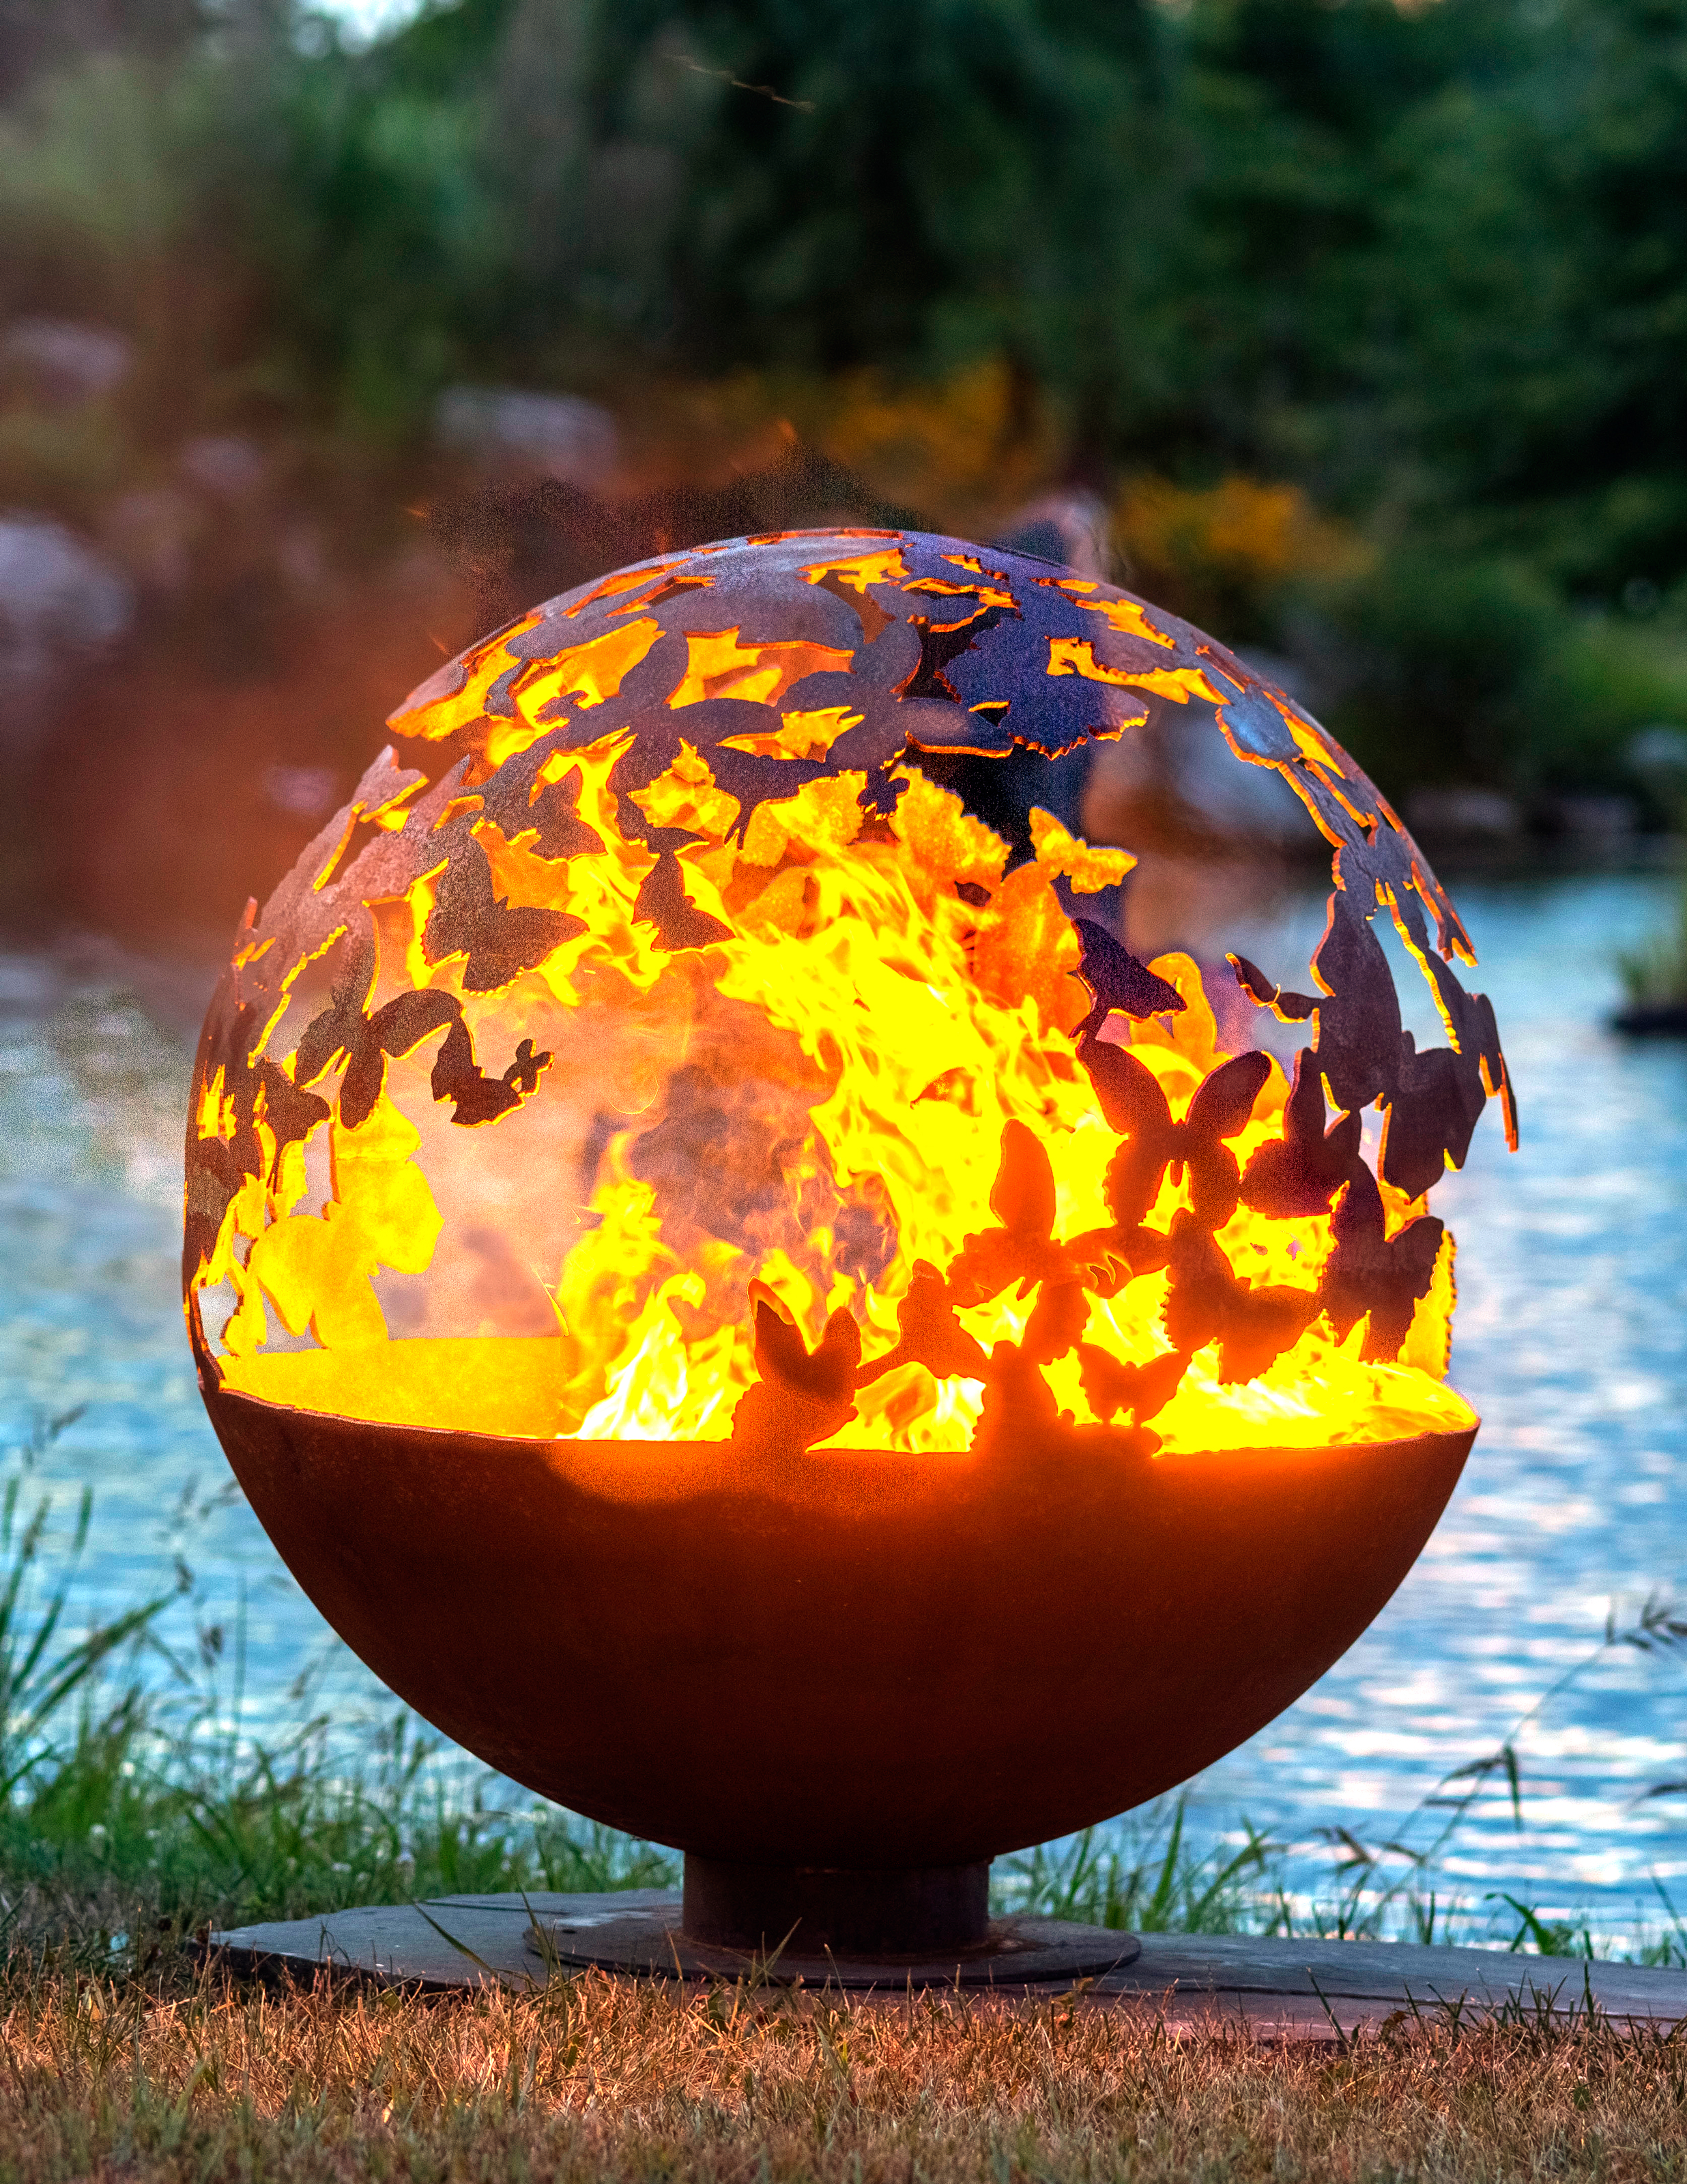 Design Your Own Kit Home Australia Wings Butterfly Fire Pit Sphere The Fire Pit Gallery